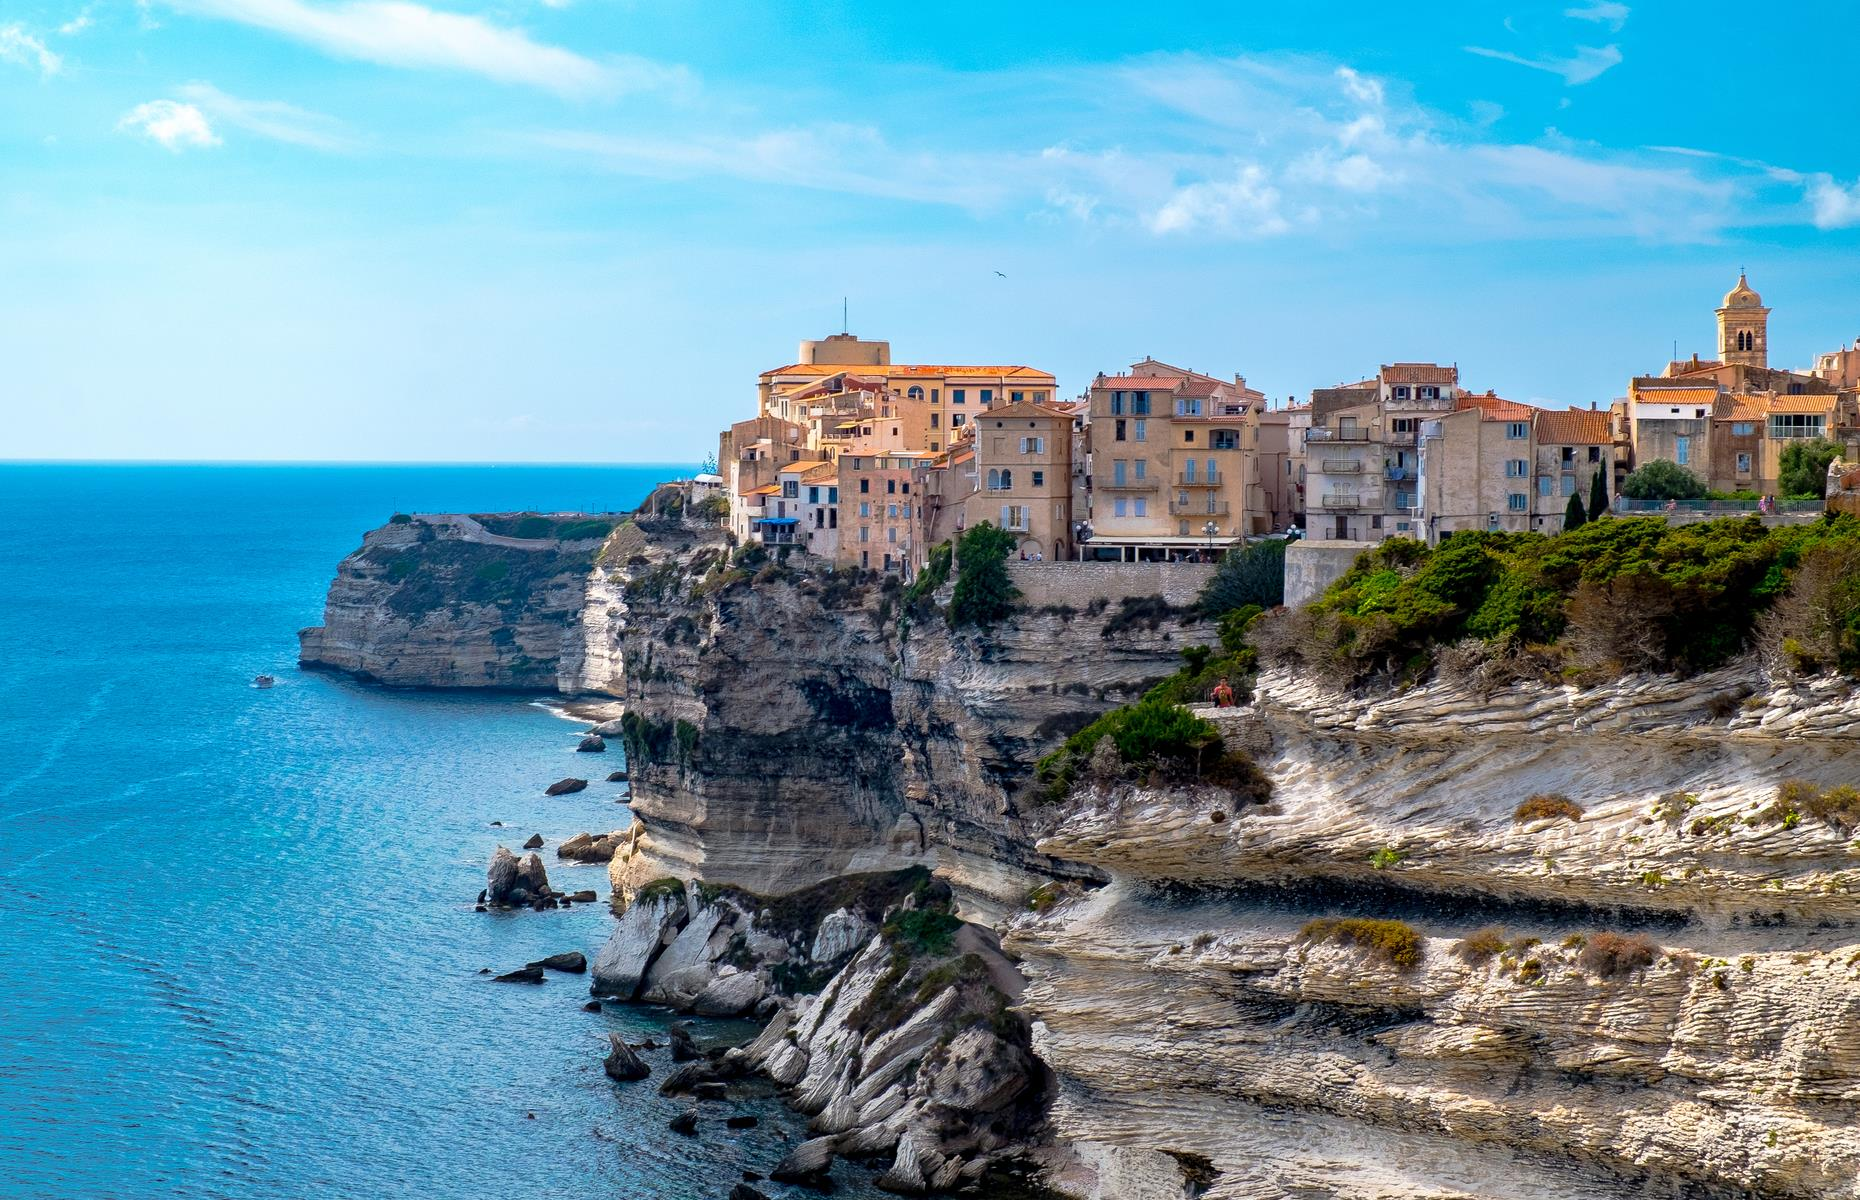 Slide 31 of 41: Dramatically poised on Corsica's rugged limestone cliffs, many of Bonifacio's buildings look like they're almost suspended over the sea below. Explore the town's meandering cobbled streets and take a walk to Capo Pertusato lighthouse, where you'll find staggering views over the glistening waters. If you fancy a dip, take a hike along the coastal path to L'Arinella, a pretty beach where you'll find peace and quiet aplenty.   Find more of the world's most stunning clifftop towns here